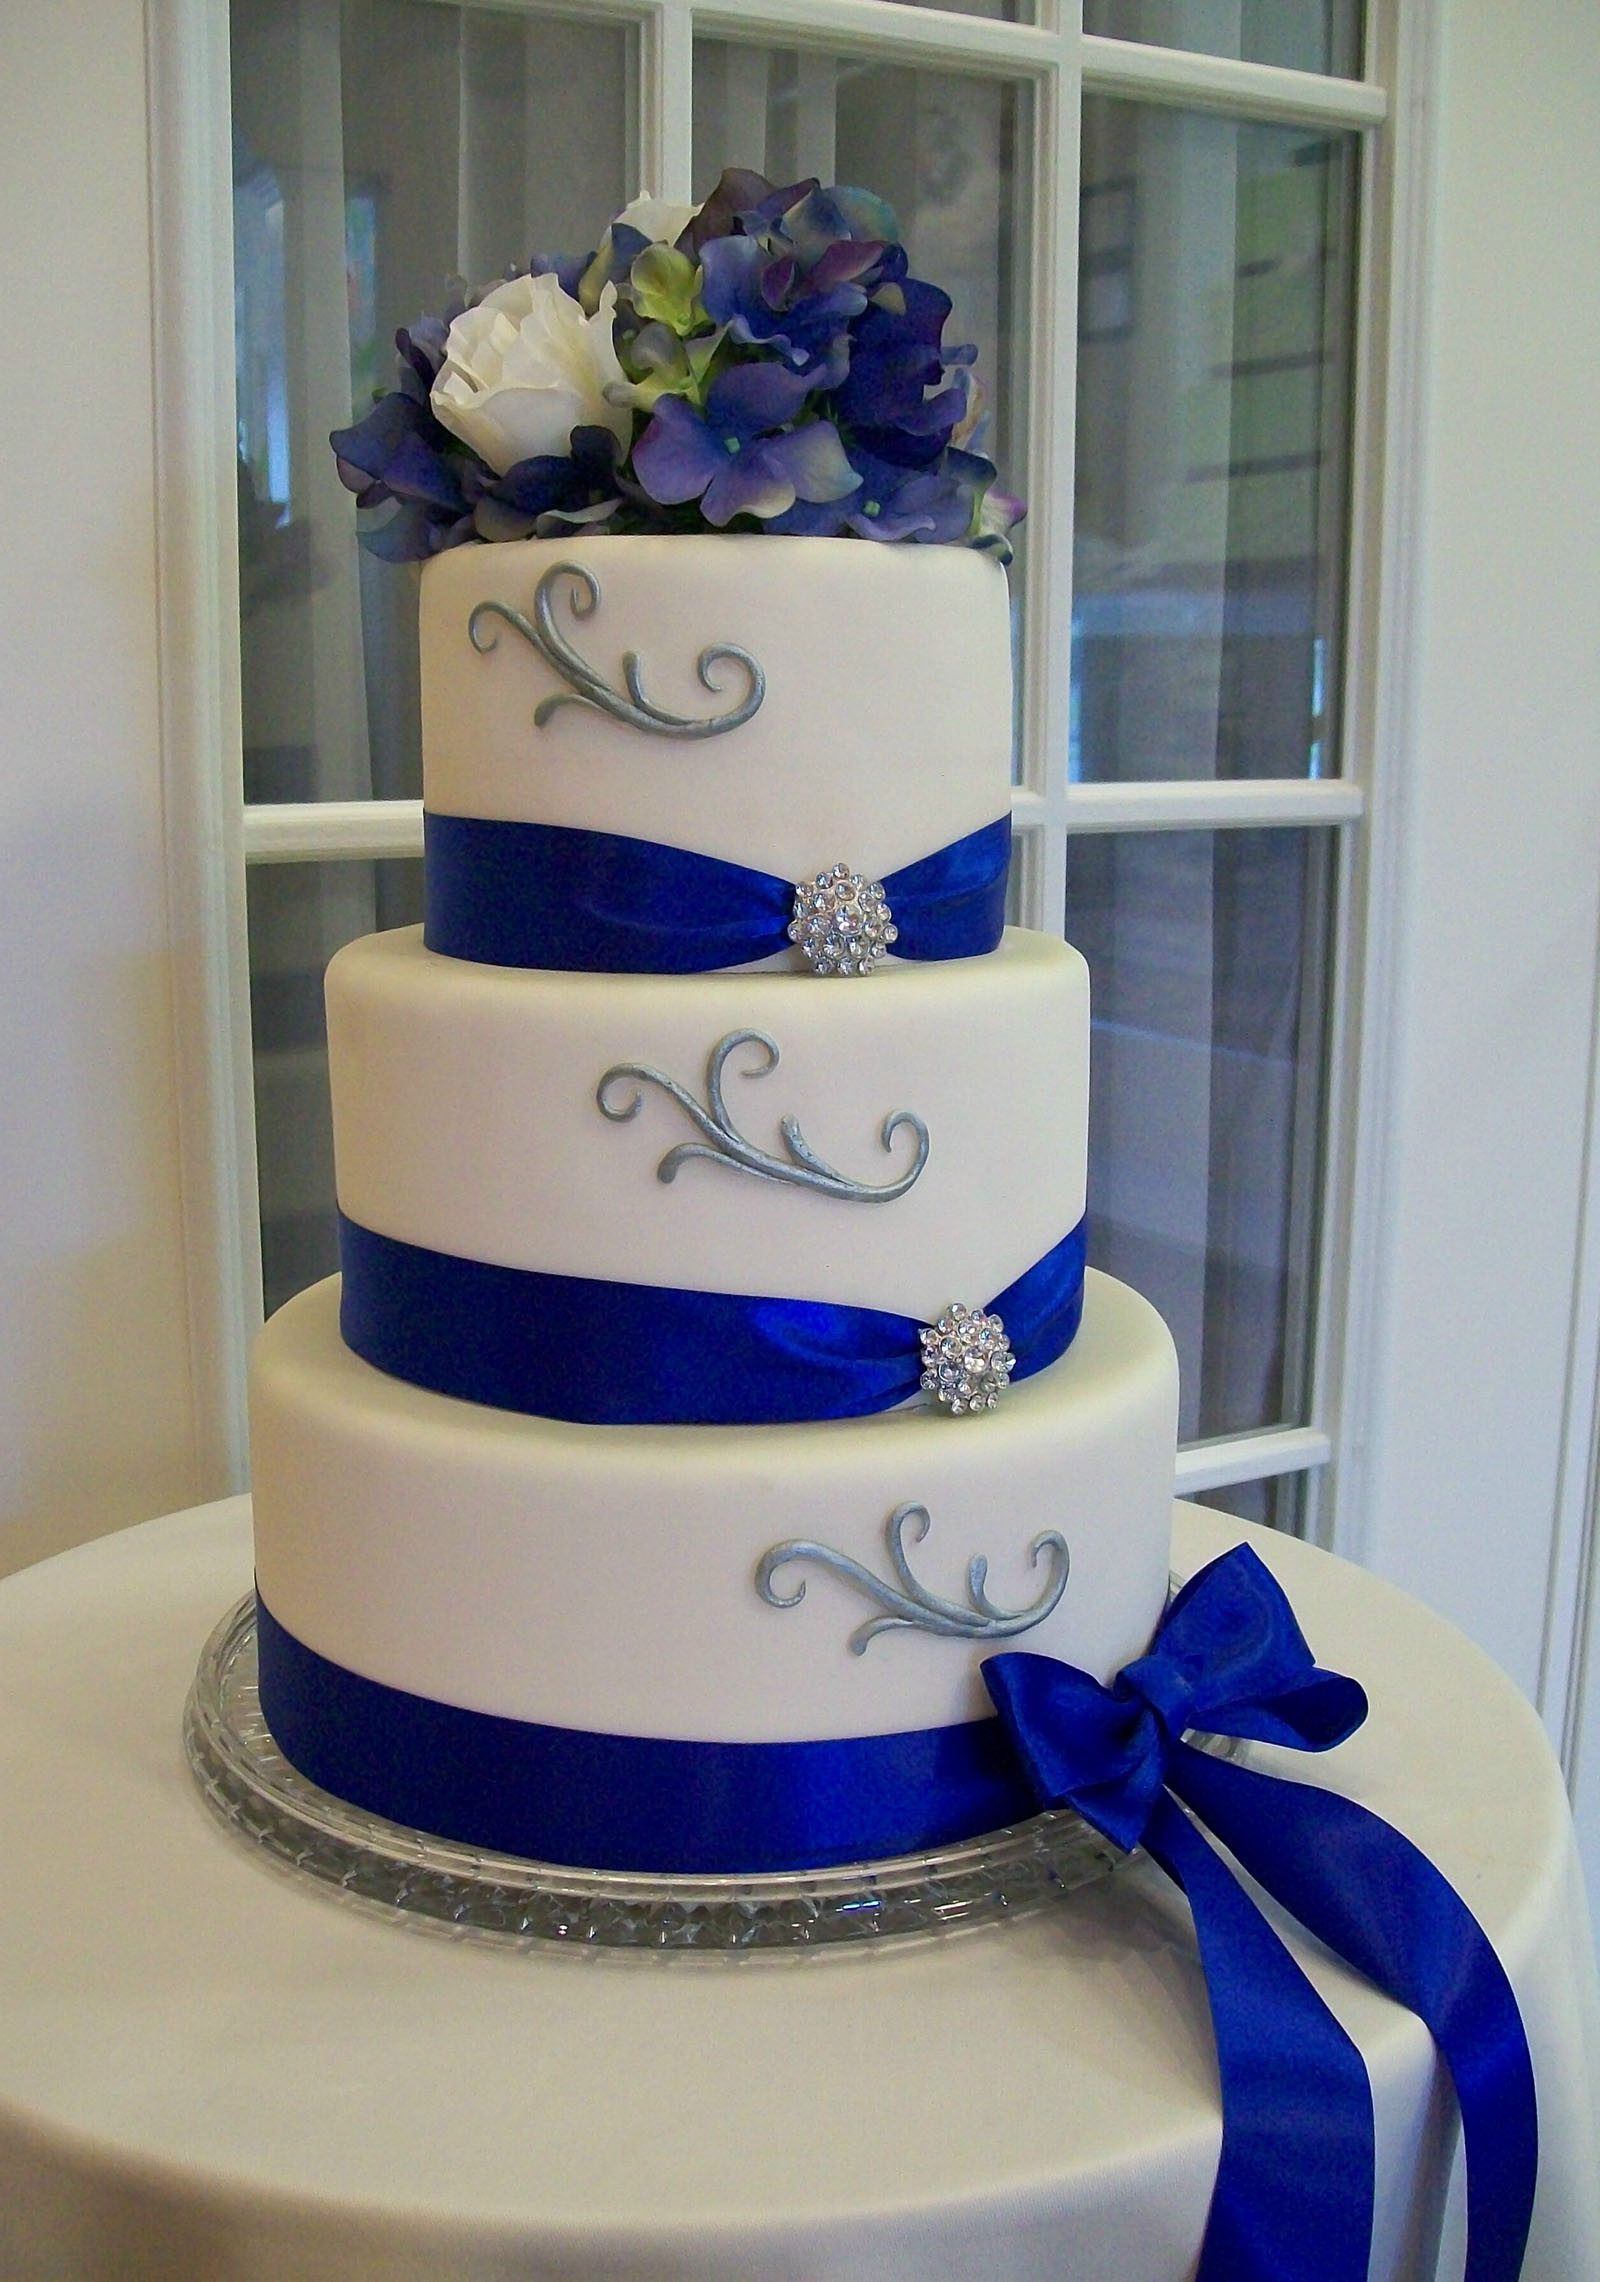 Royal Blue Wedding Cakes Designs  Trendy Royal Blue Wedding Cake Designs Wedding Cakes